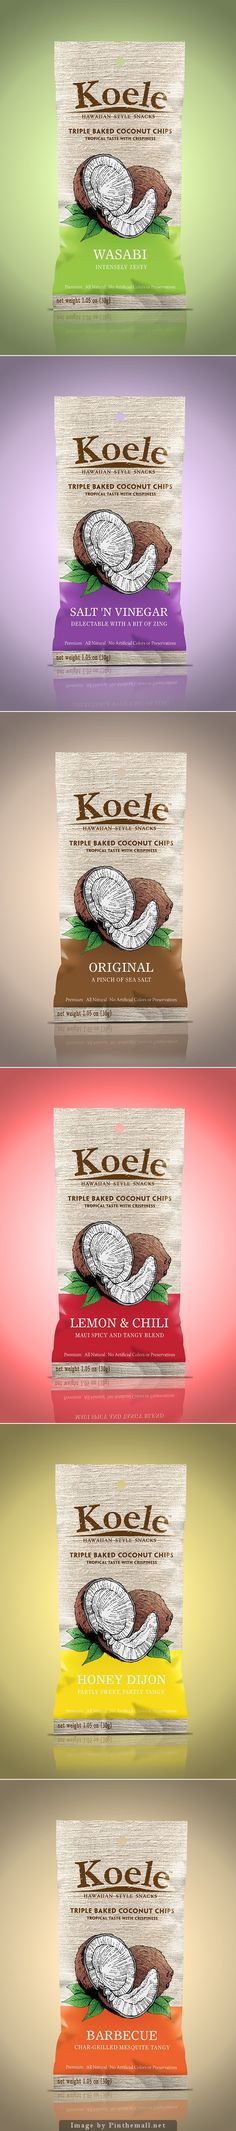 Koele Coconut Chips by Ujee Khan